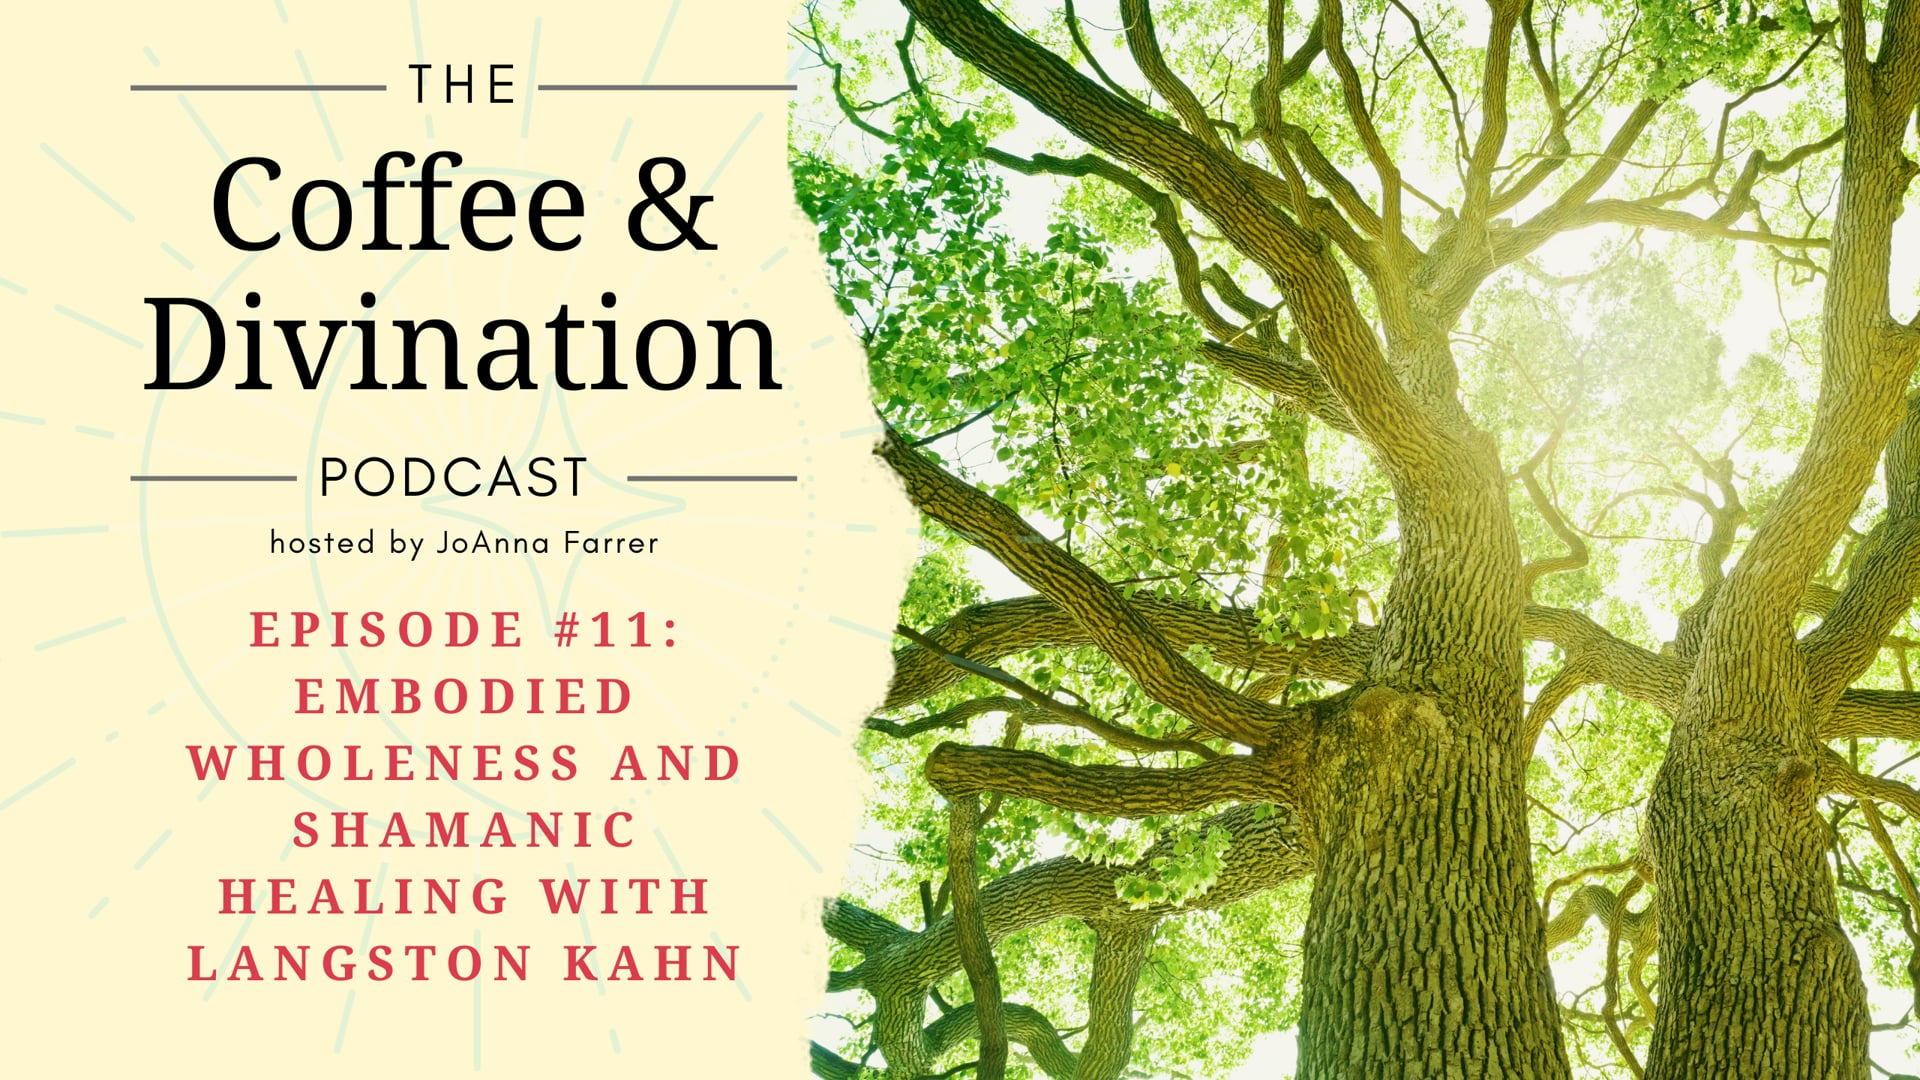 Coffee and Divination - Episode #11: Embodied Wholeness and Shamanic Healing with Langston Kahn